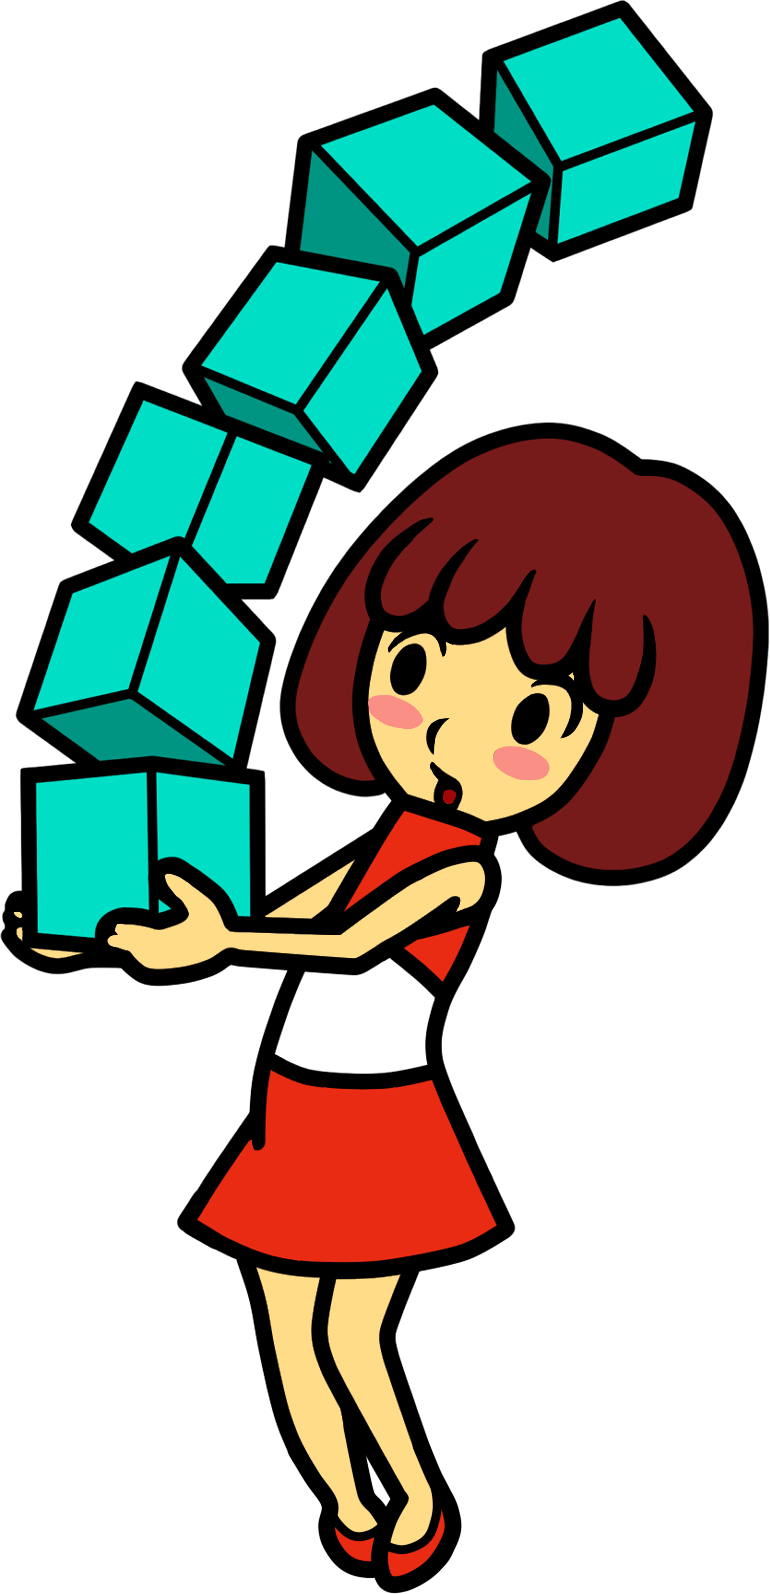 Image dazzle girl ds. Thumb clipart relic